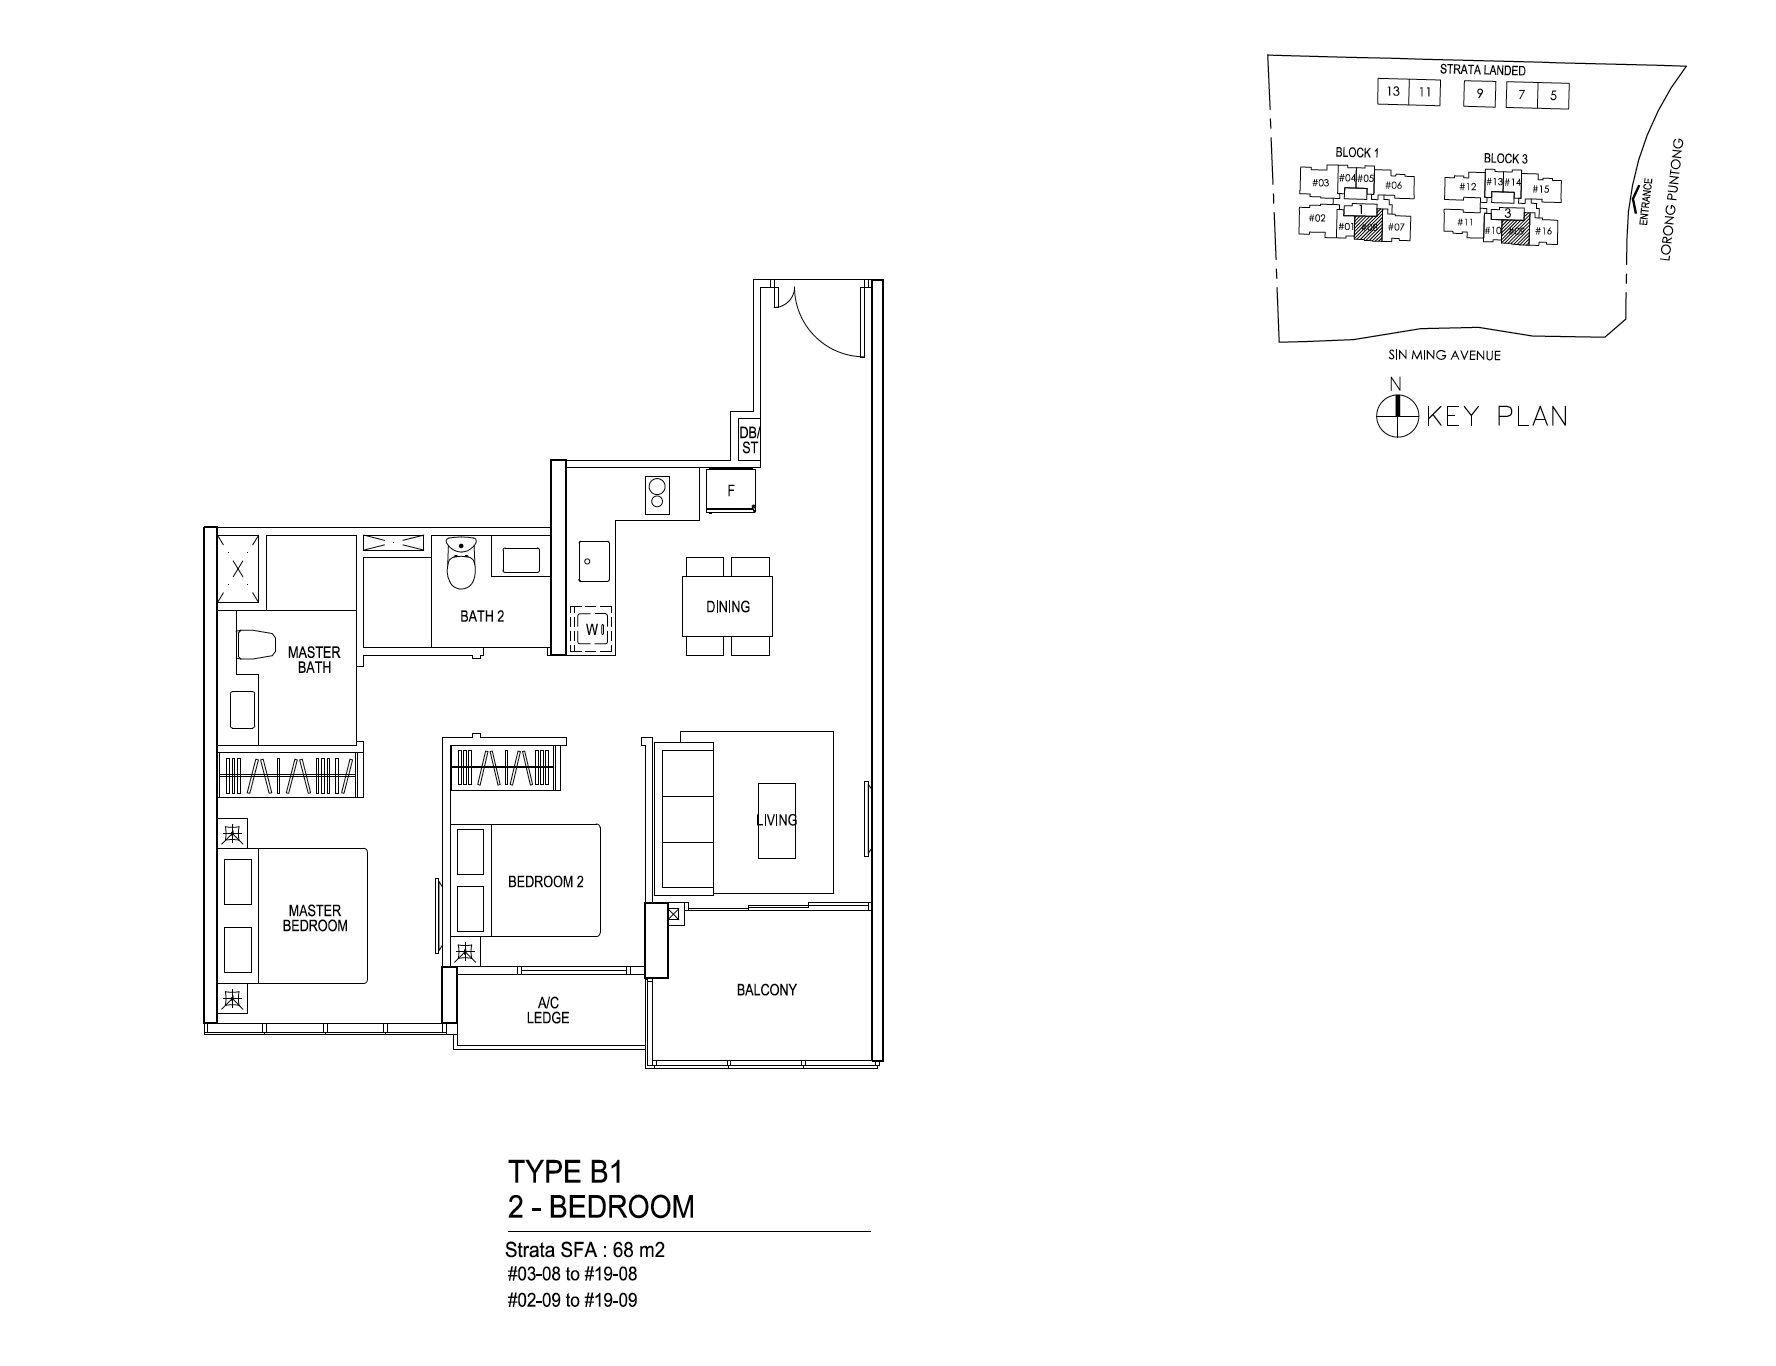 Thomson Impressions 2 bedroom floor plan